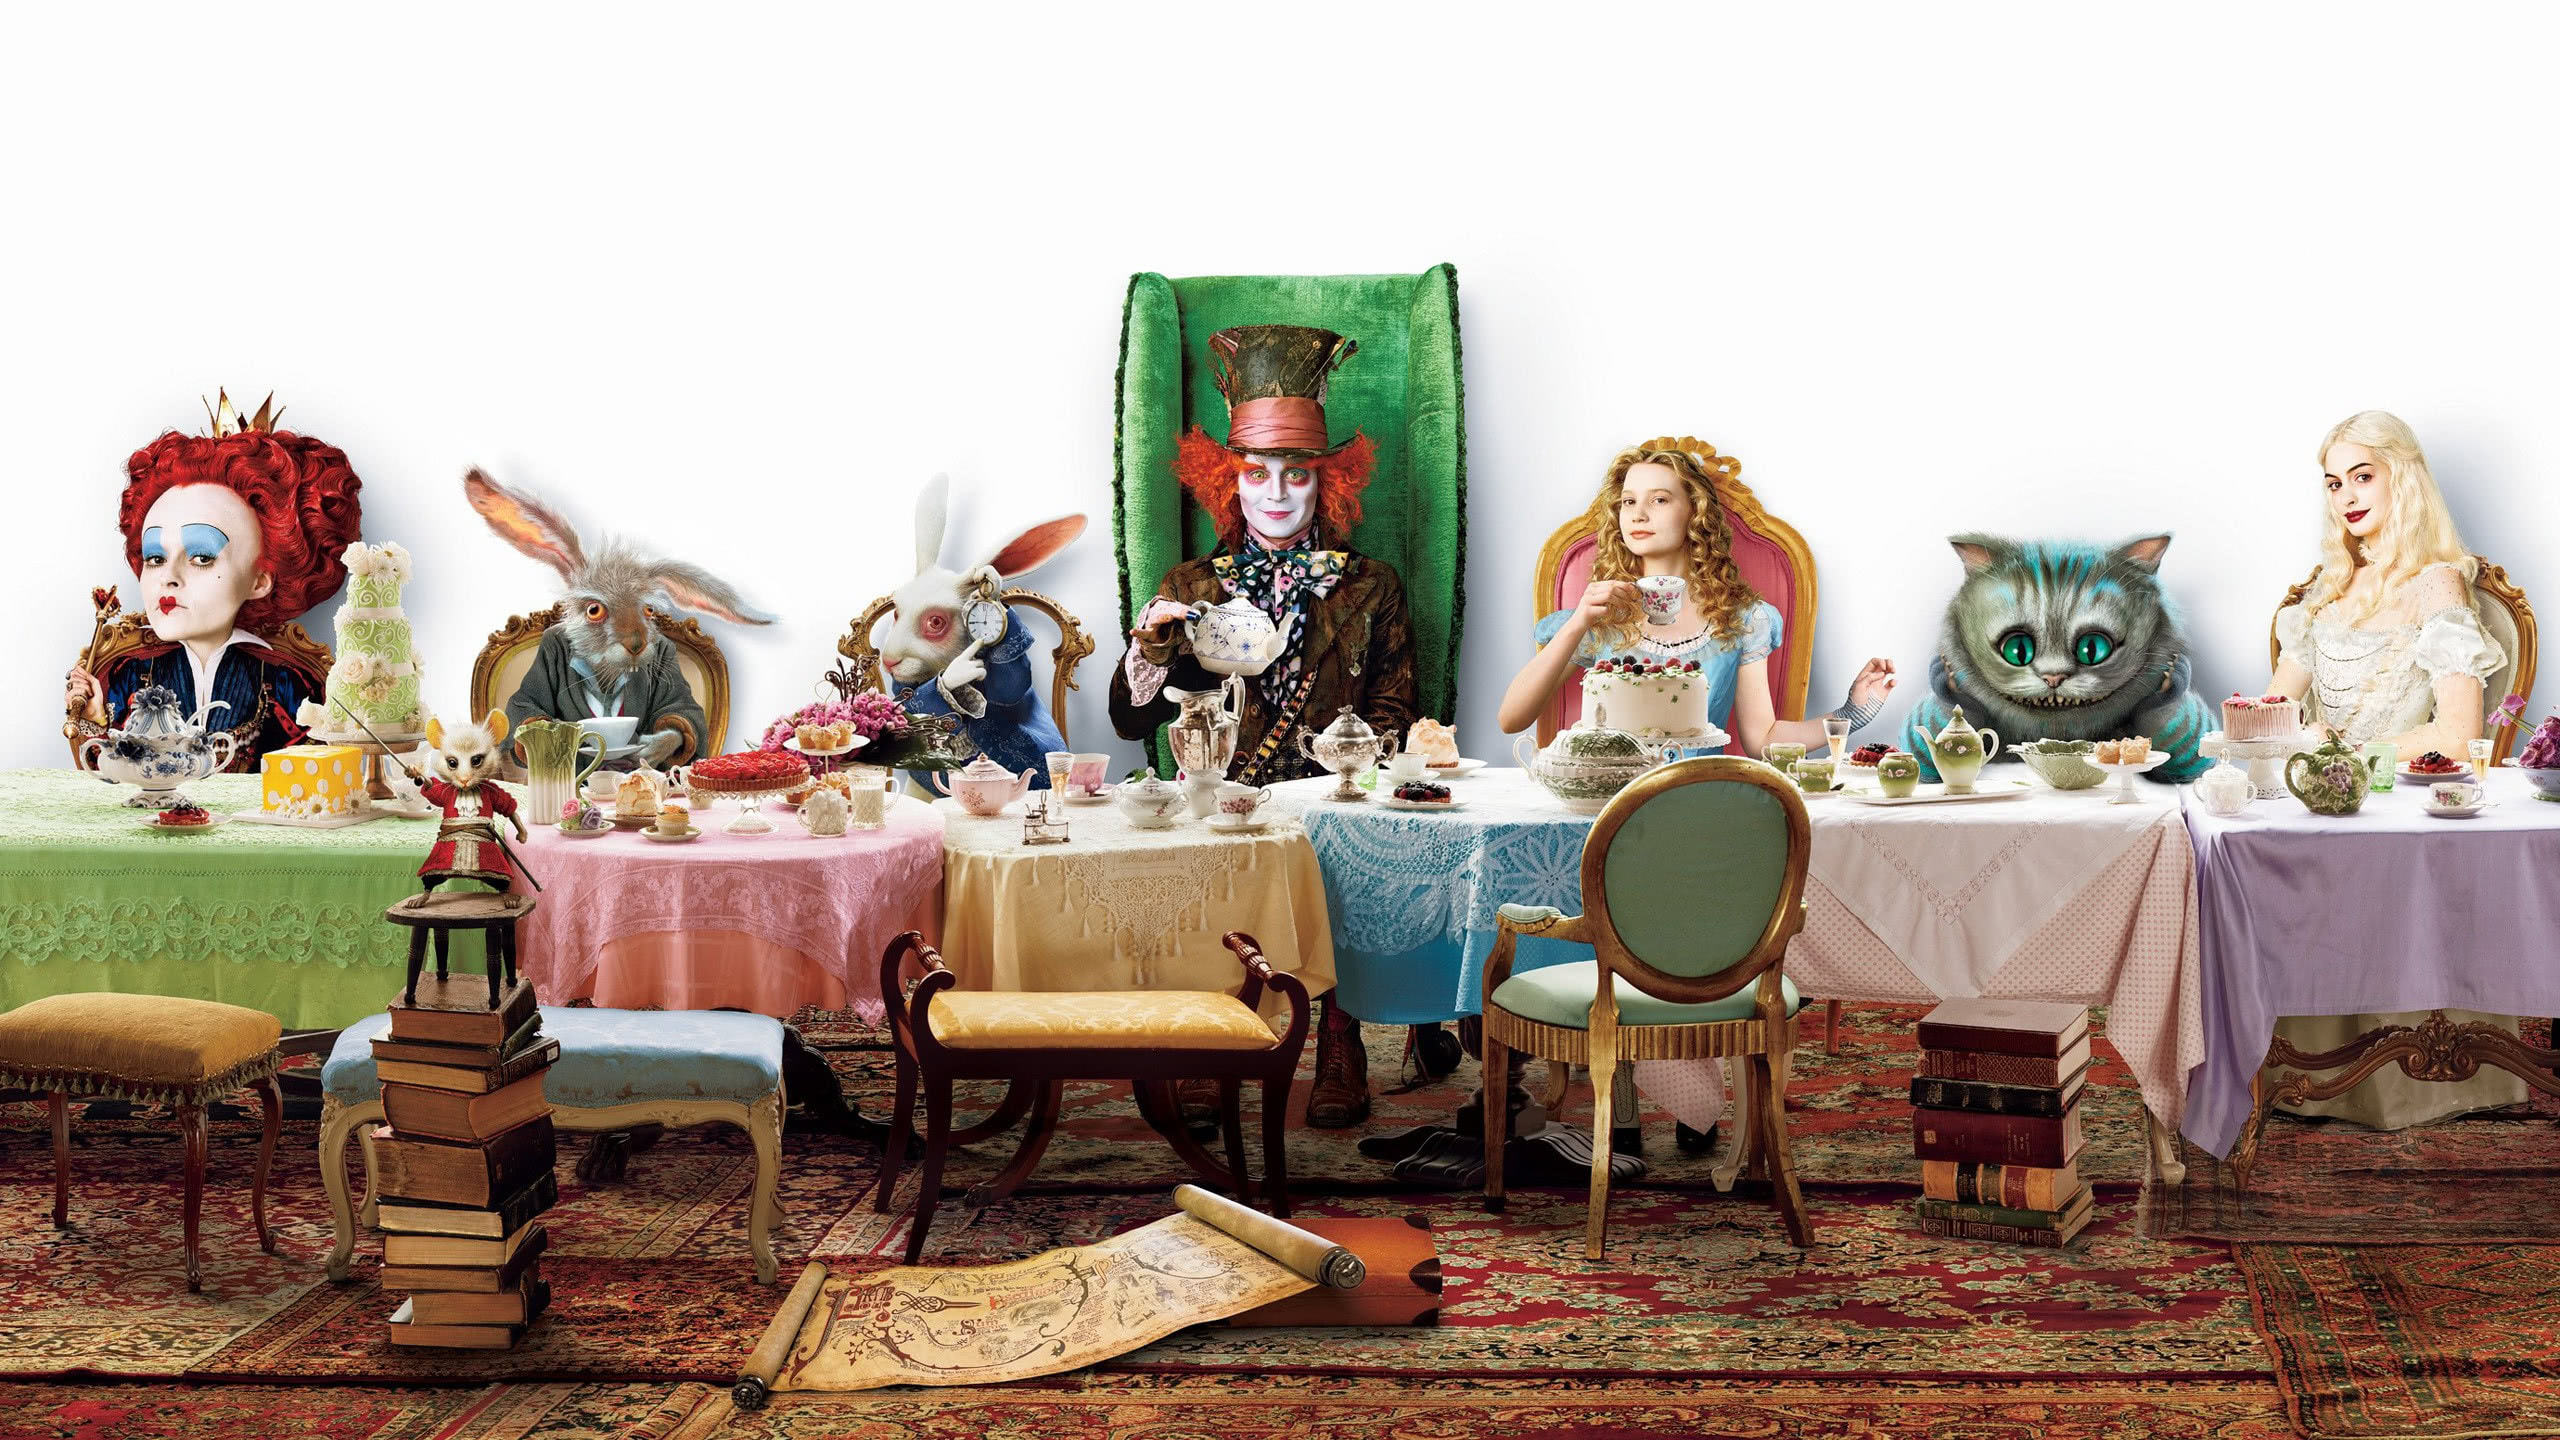 alice adventures in wonderland tea party table wqhd 1440p wallpaper